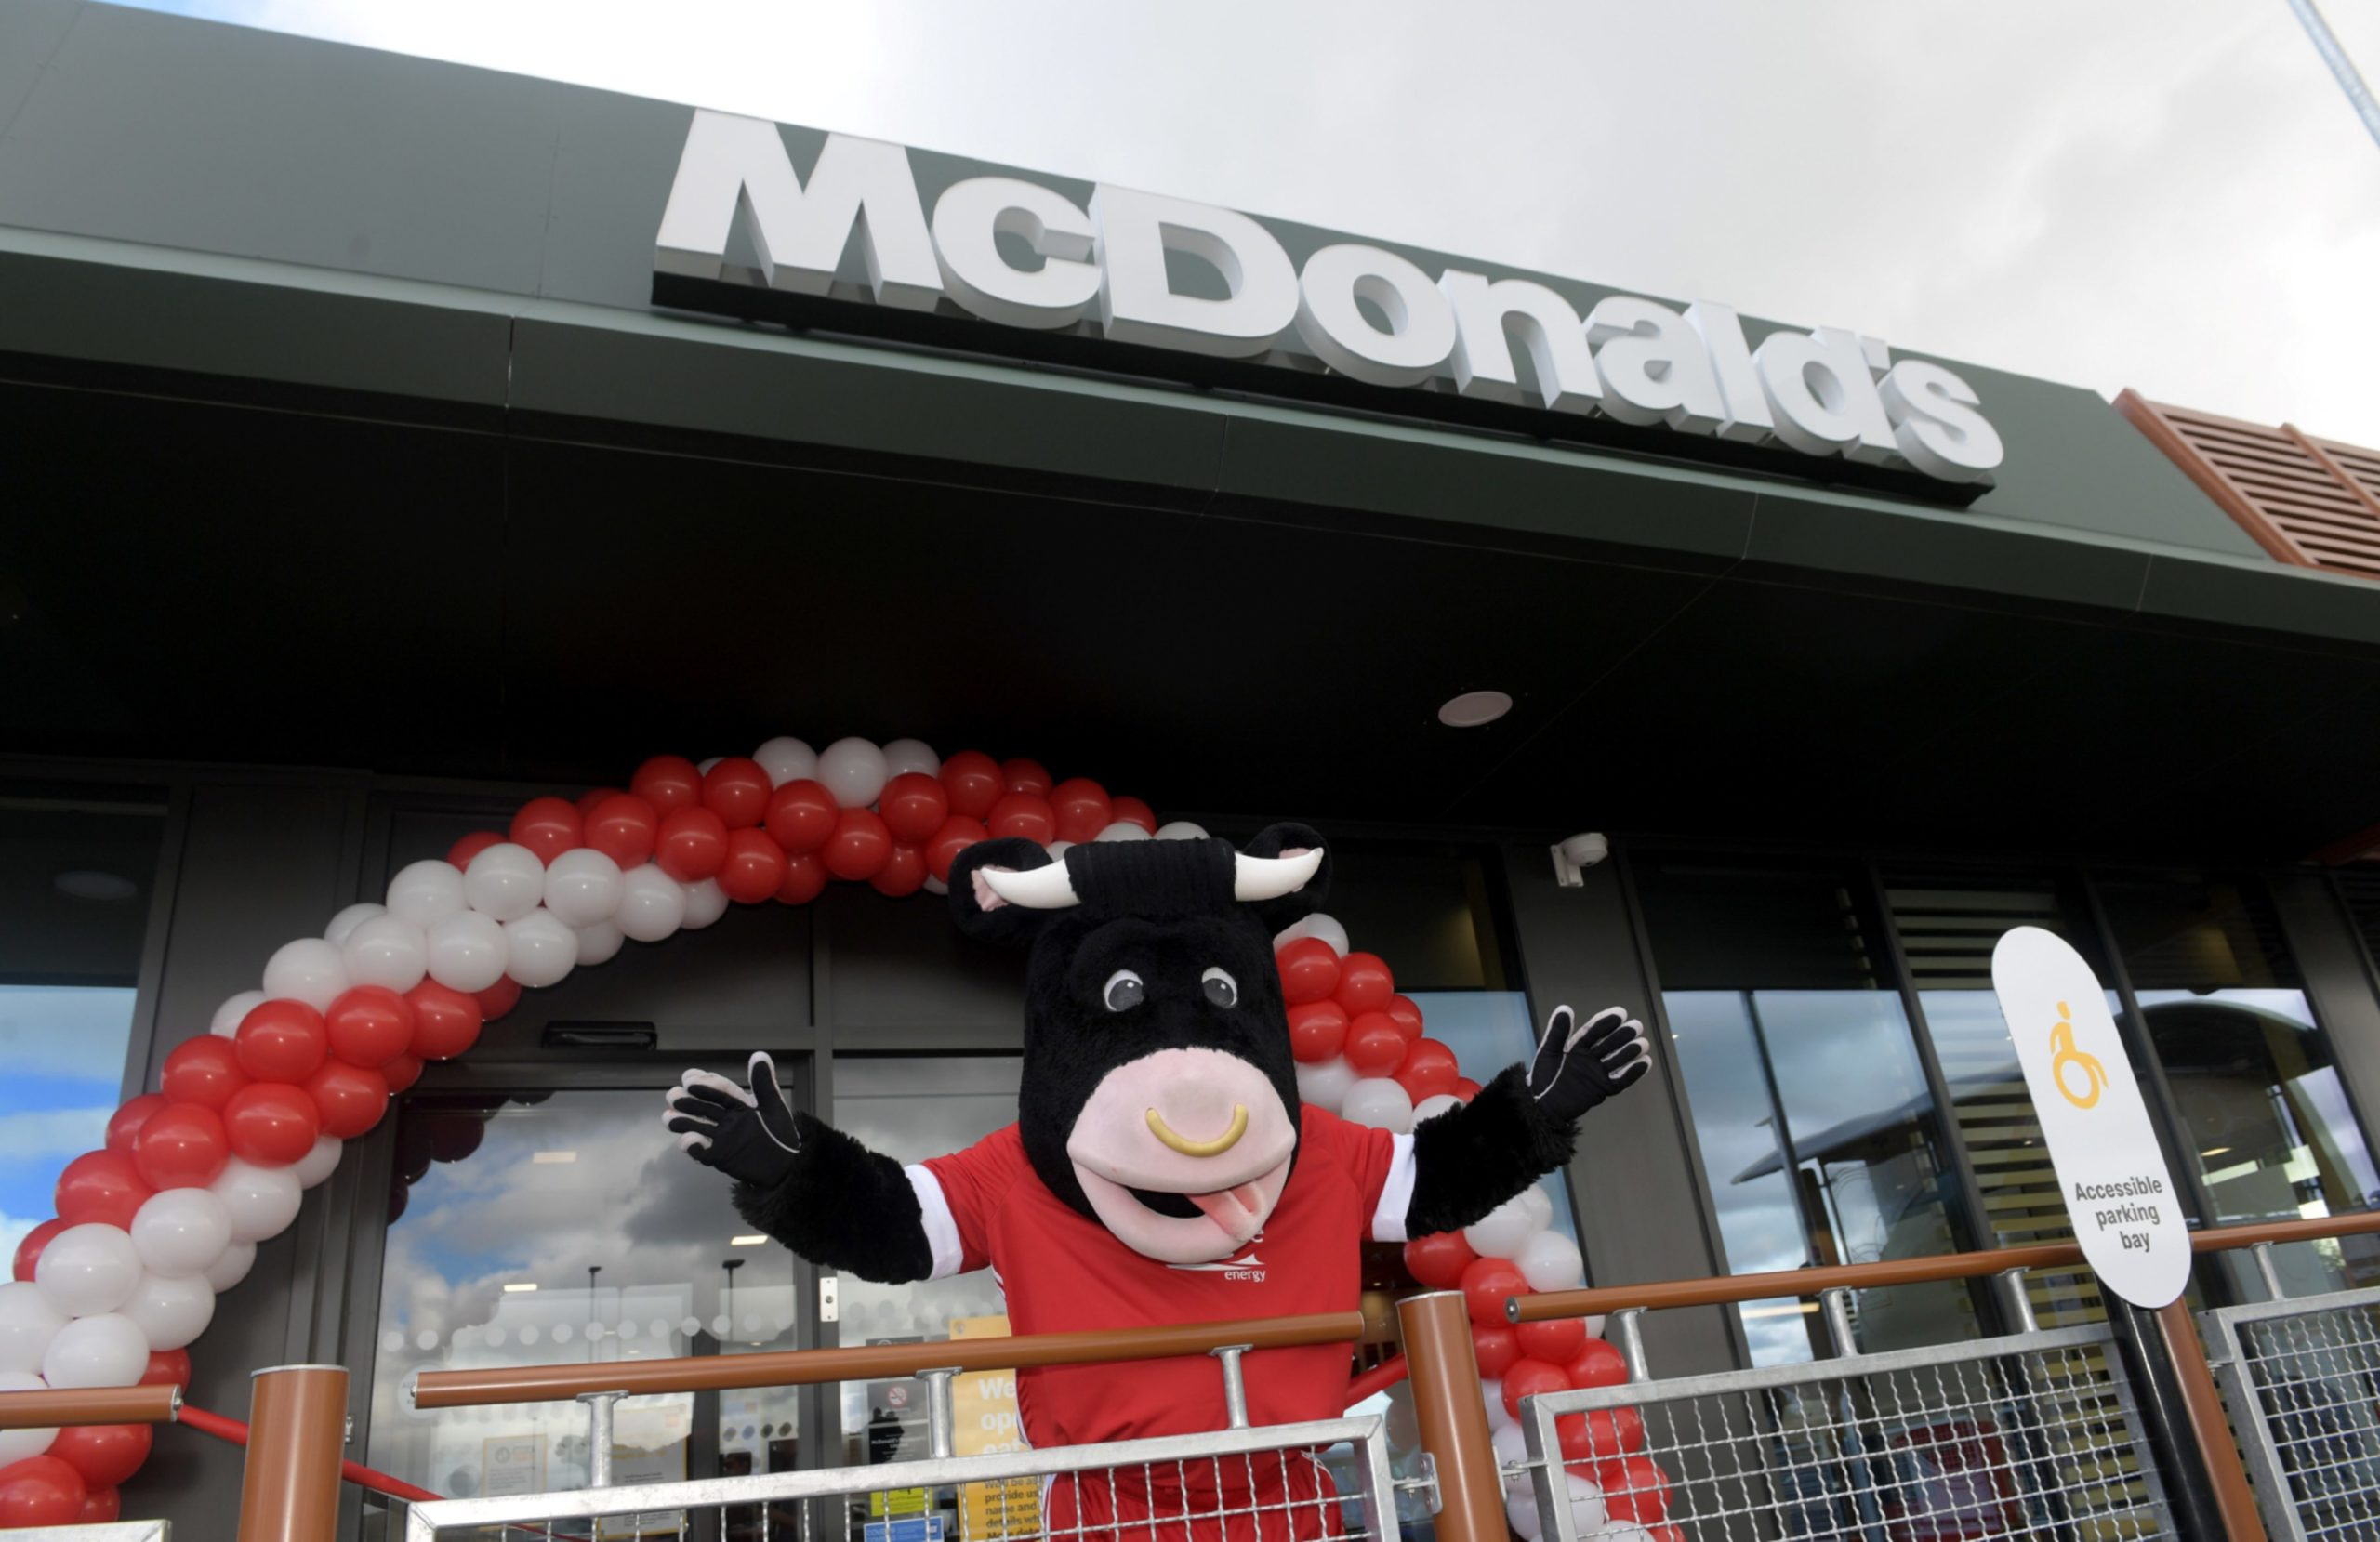 Angus the Bull cut the ribbon at the Westhill restaurant. Picture by Kath Flannery